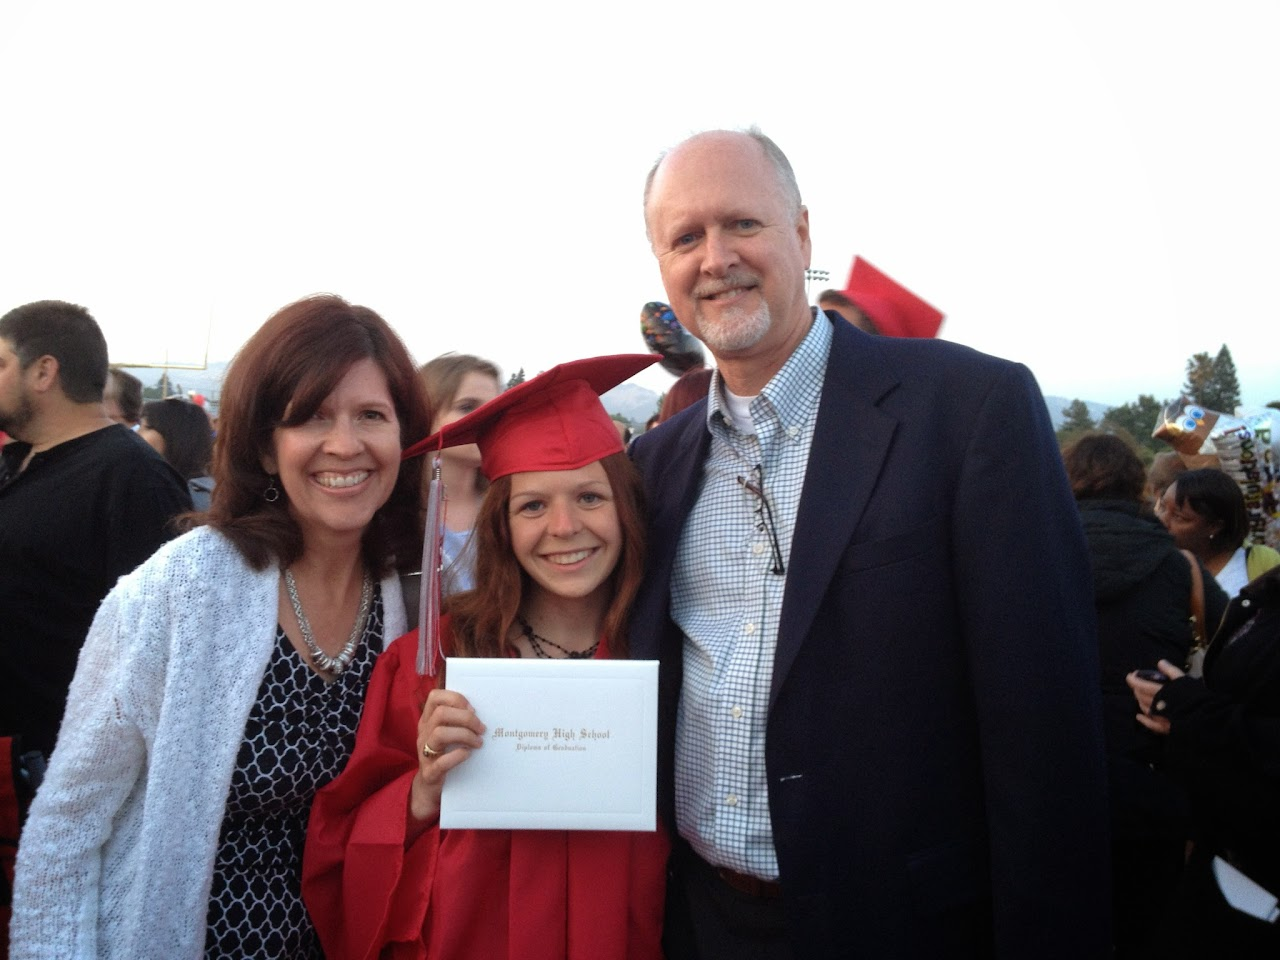 Courtneys Graduation Montgomery High May 2014 - Courtney_graduation_MHS_20140530_46.JPG